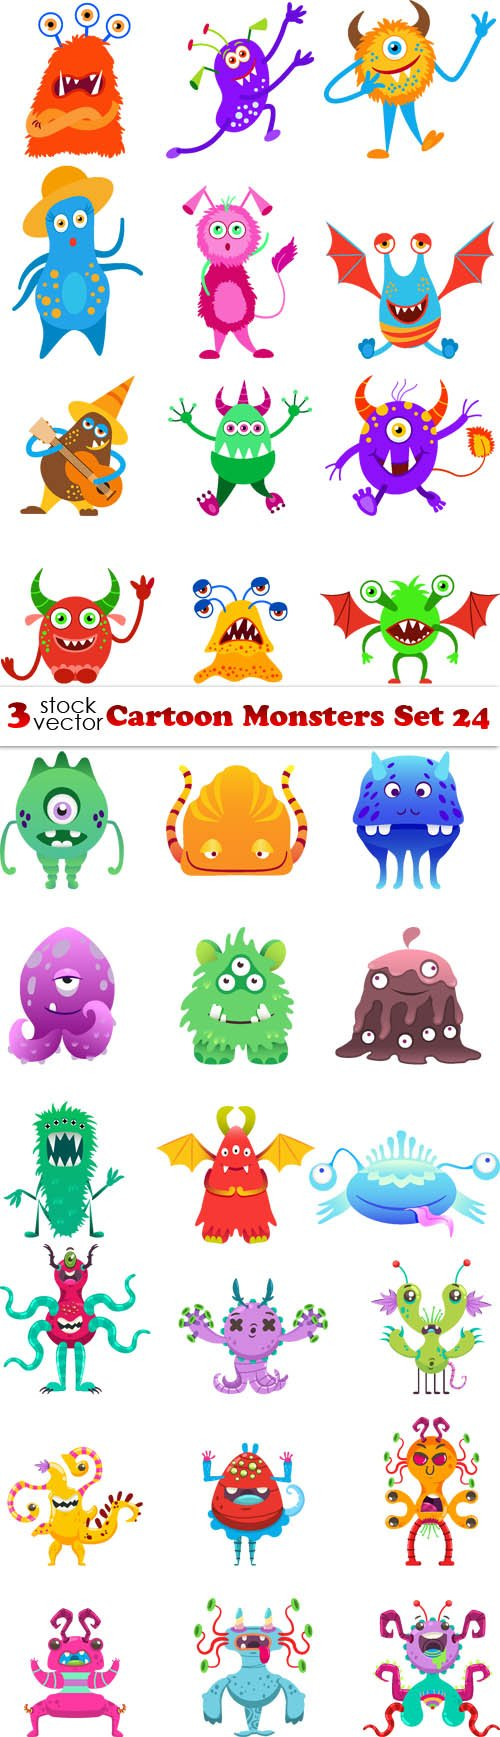 Vectors - Cartoon Monsters Set 24